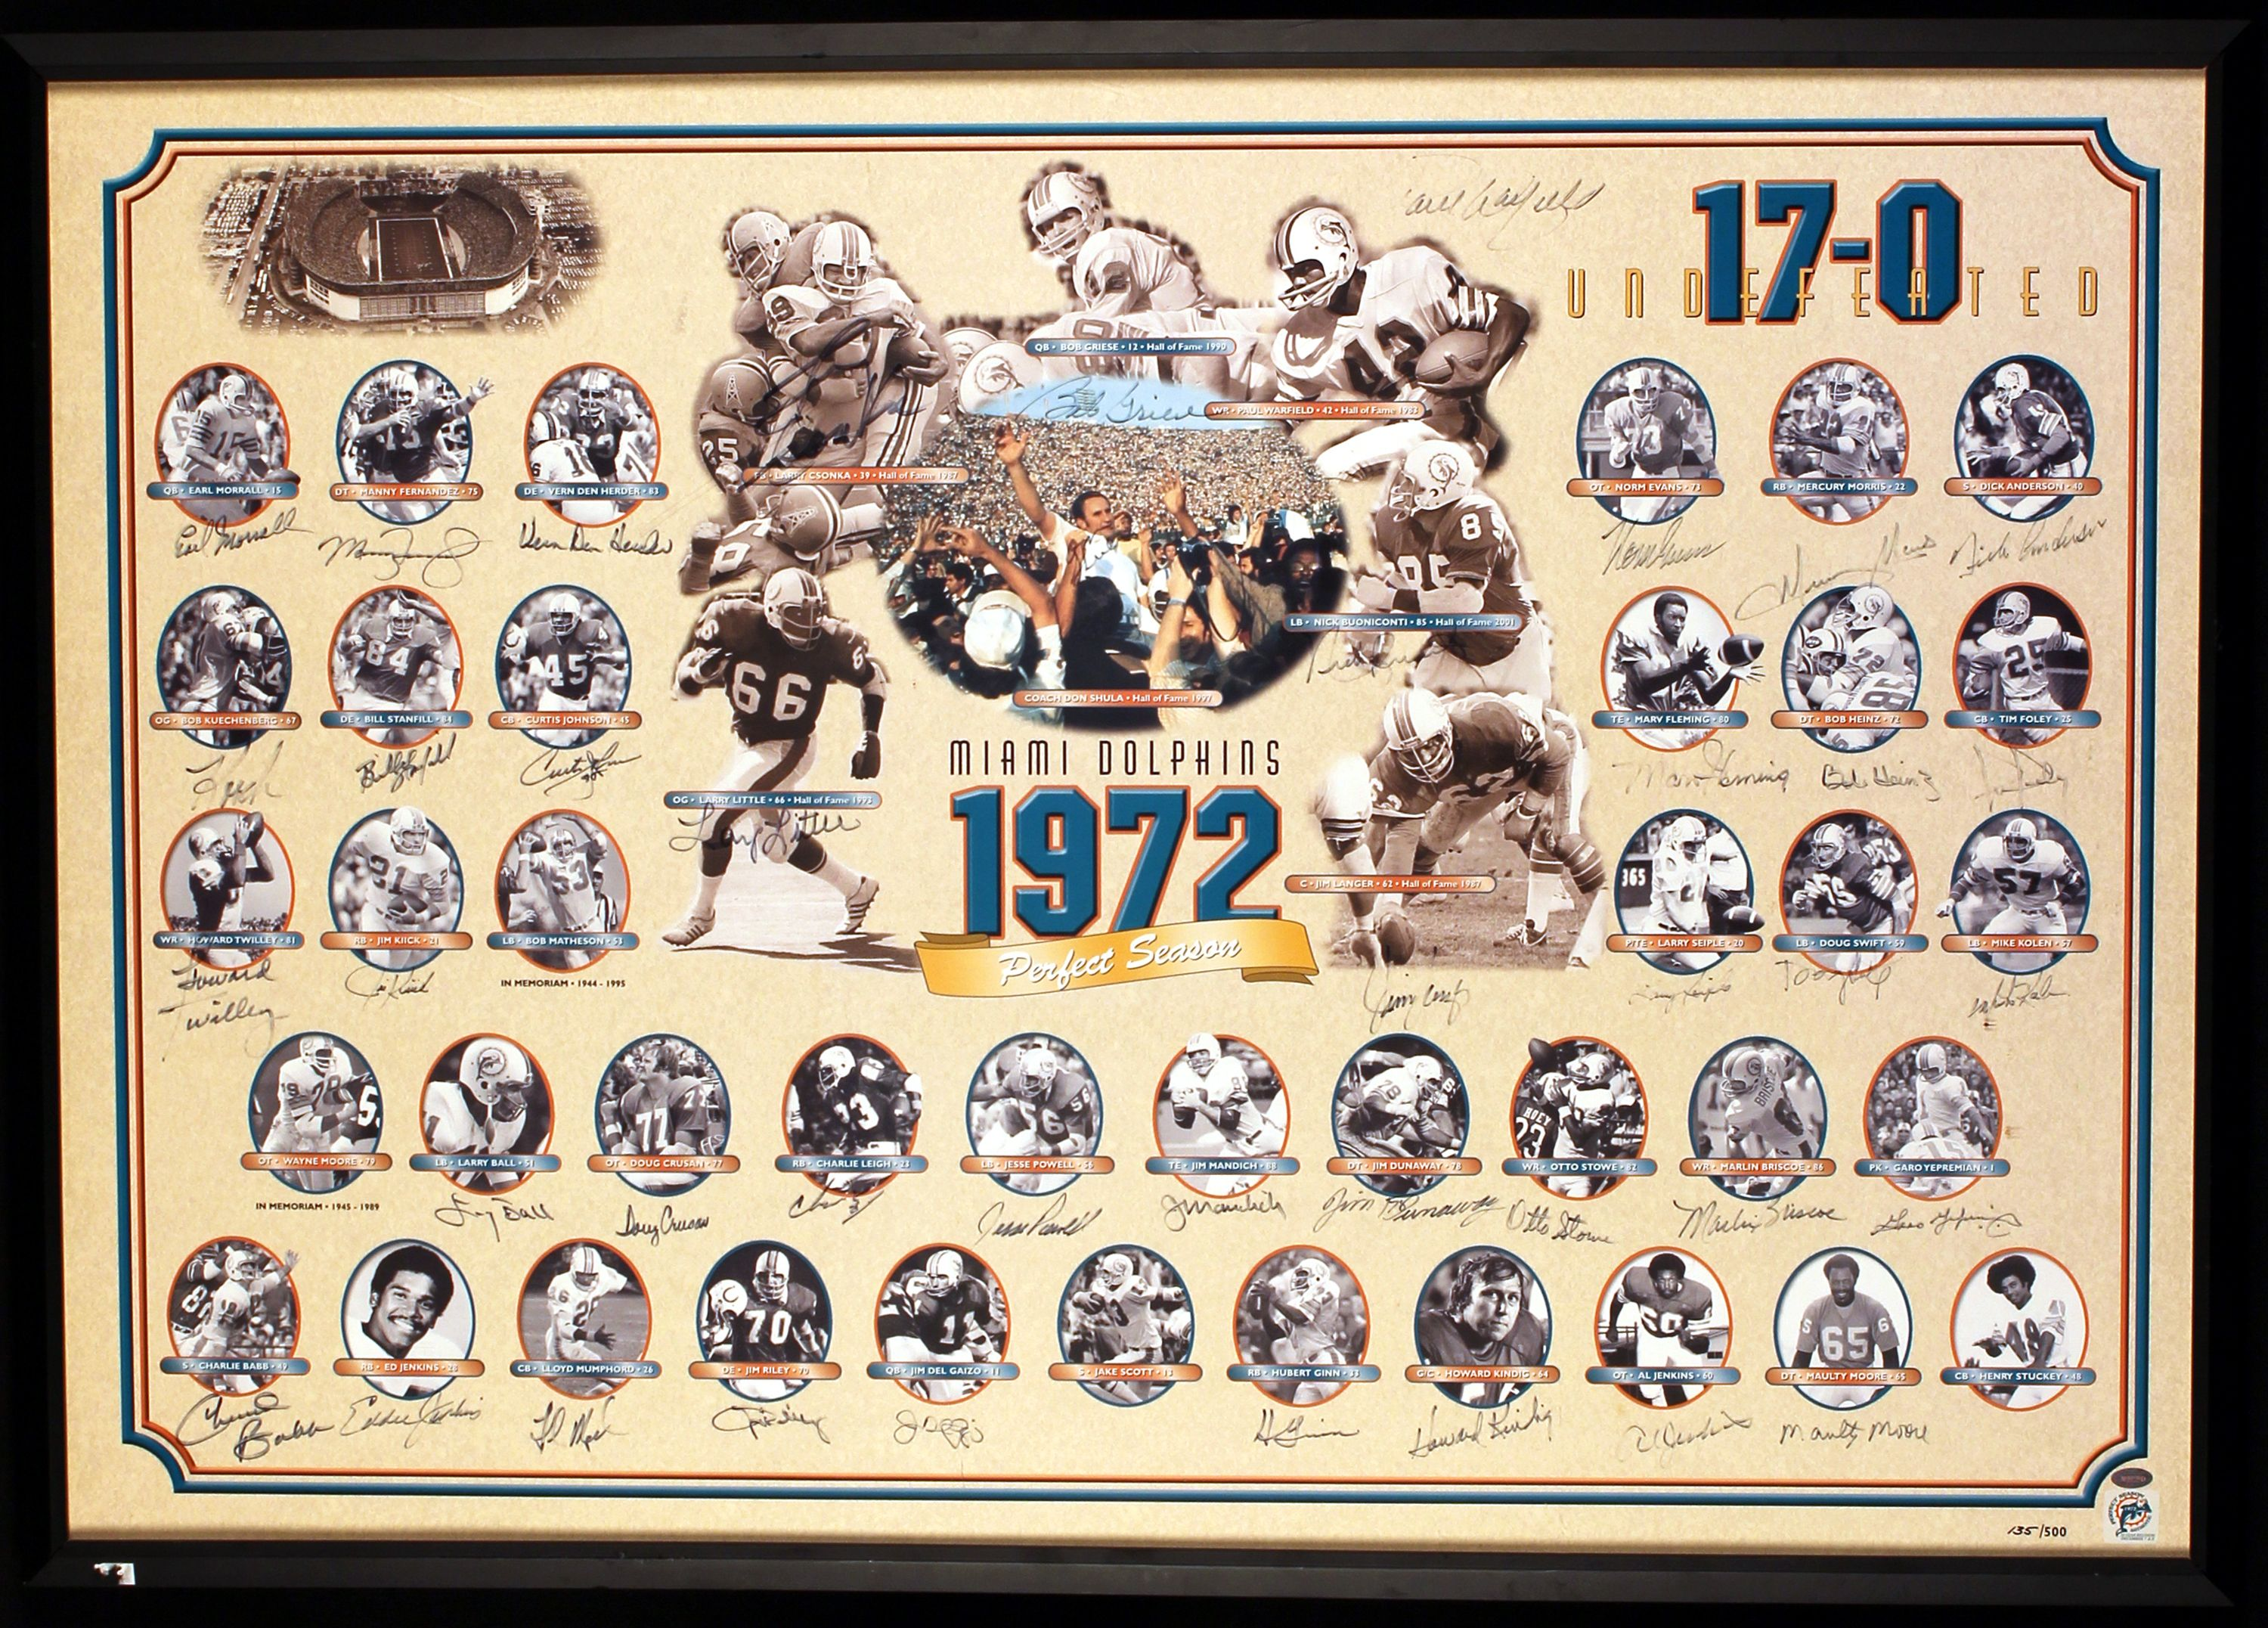 1972 perfect season miami dolphins team signed and framed 1972 perfect season miami dolphins team signed and framed jeuxipadfo Image collections